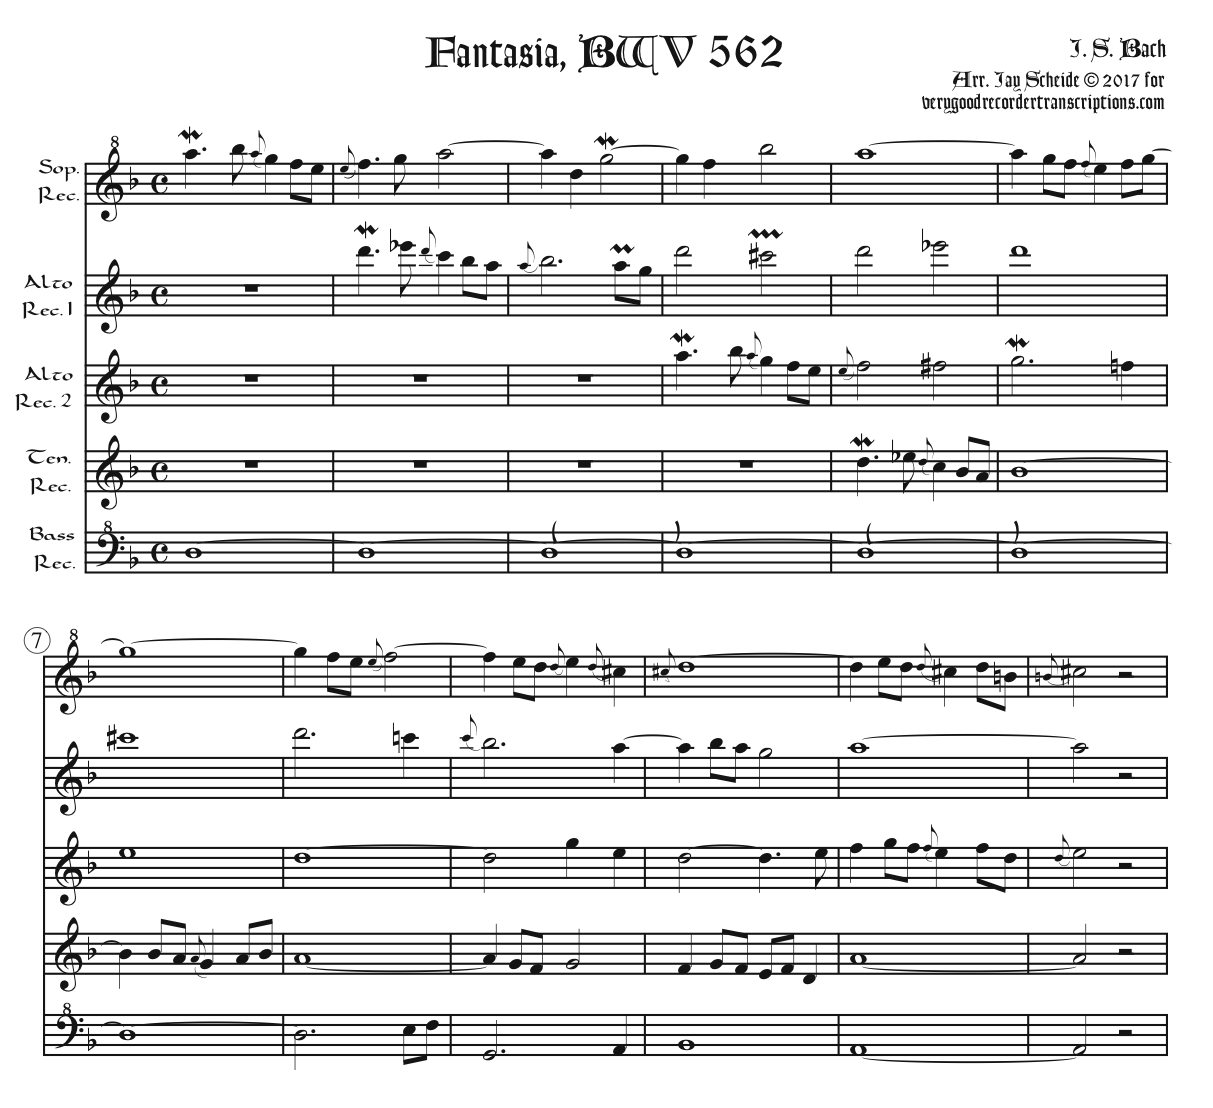 Fantasia BWV 562, arr. for recorder quintet